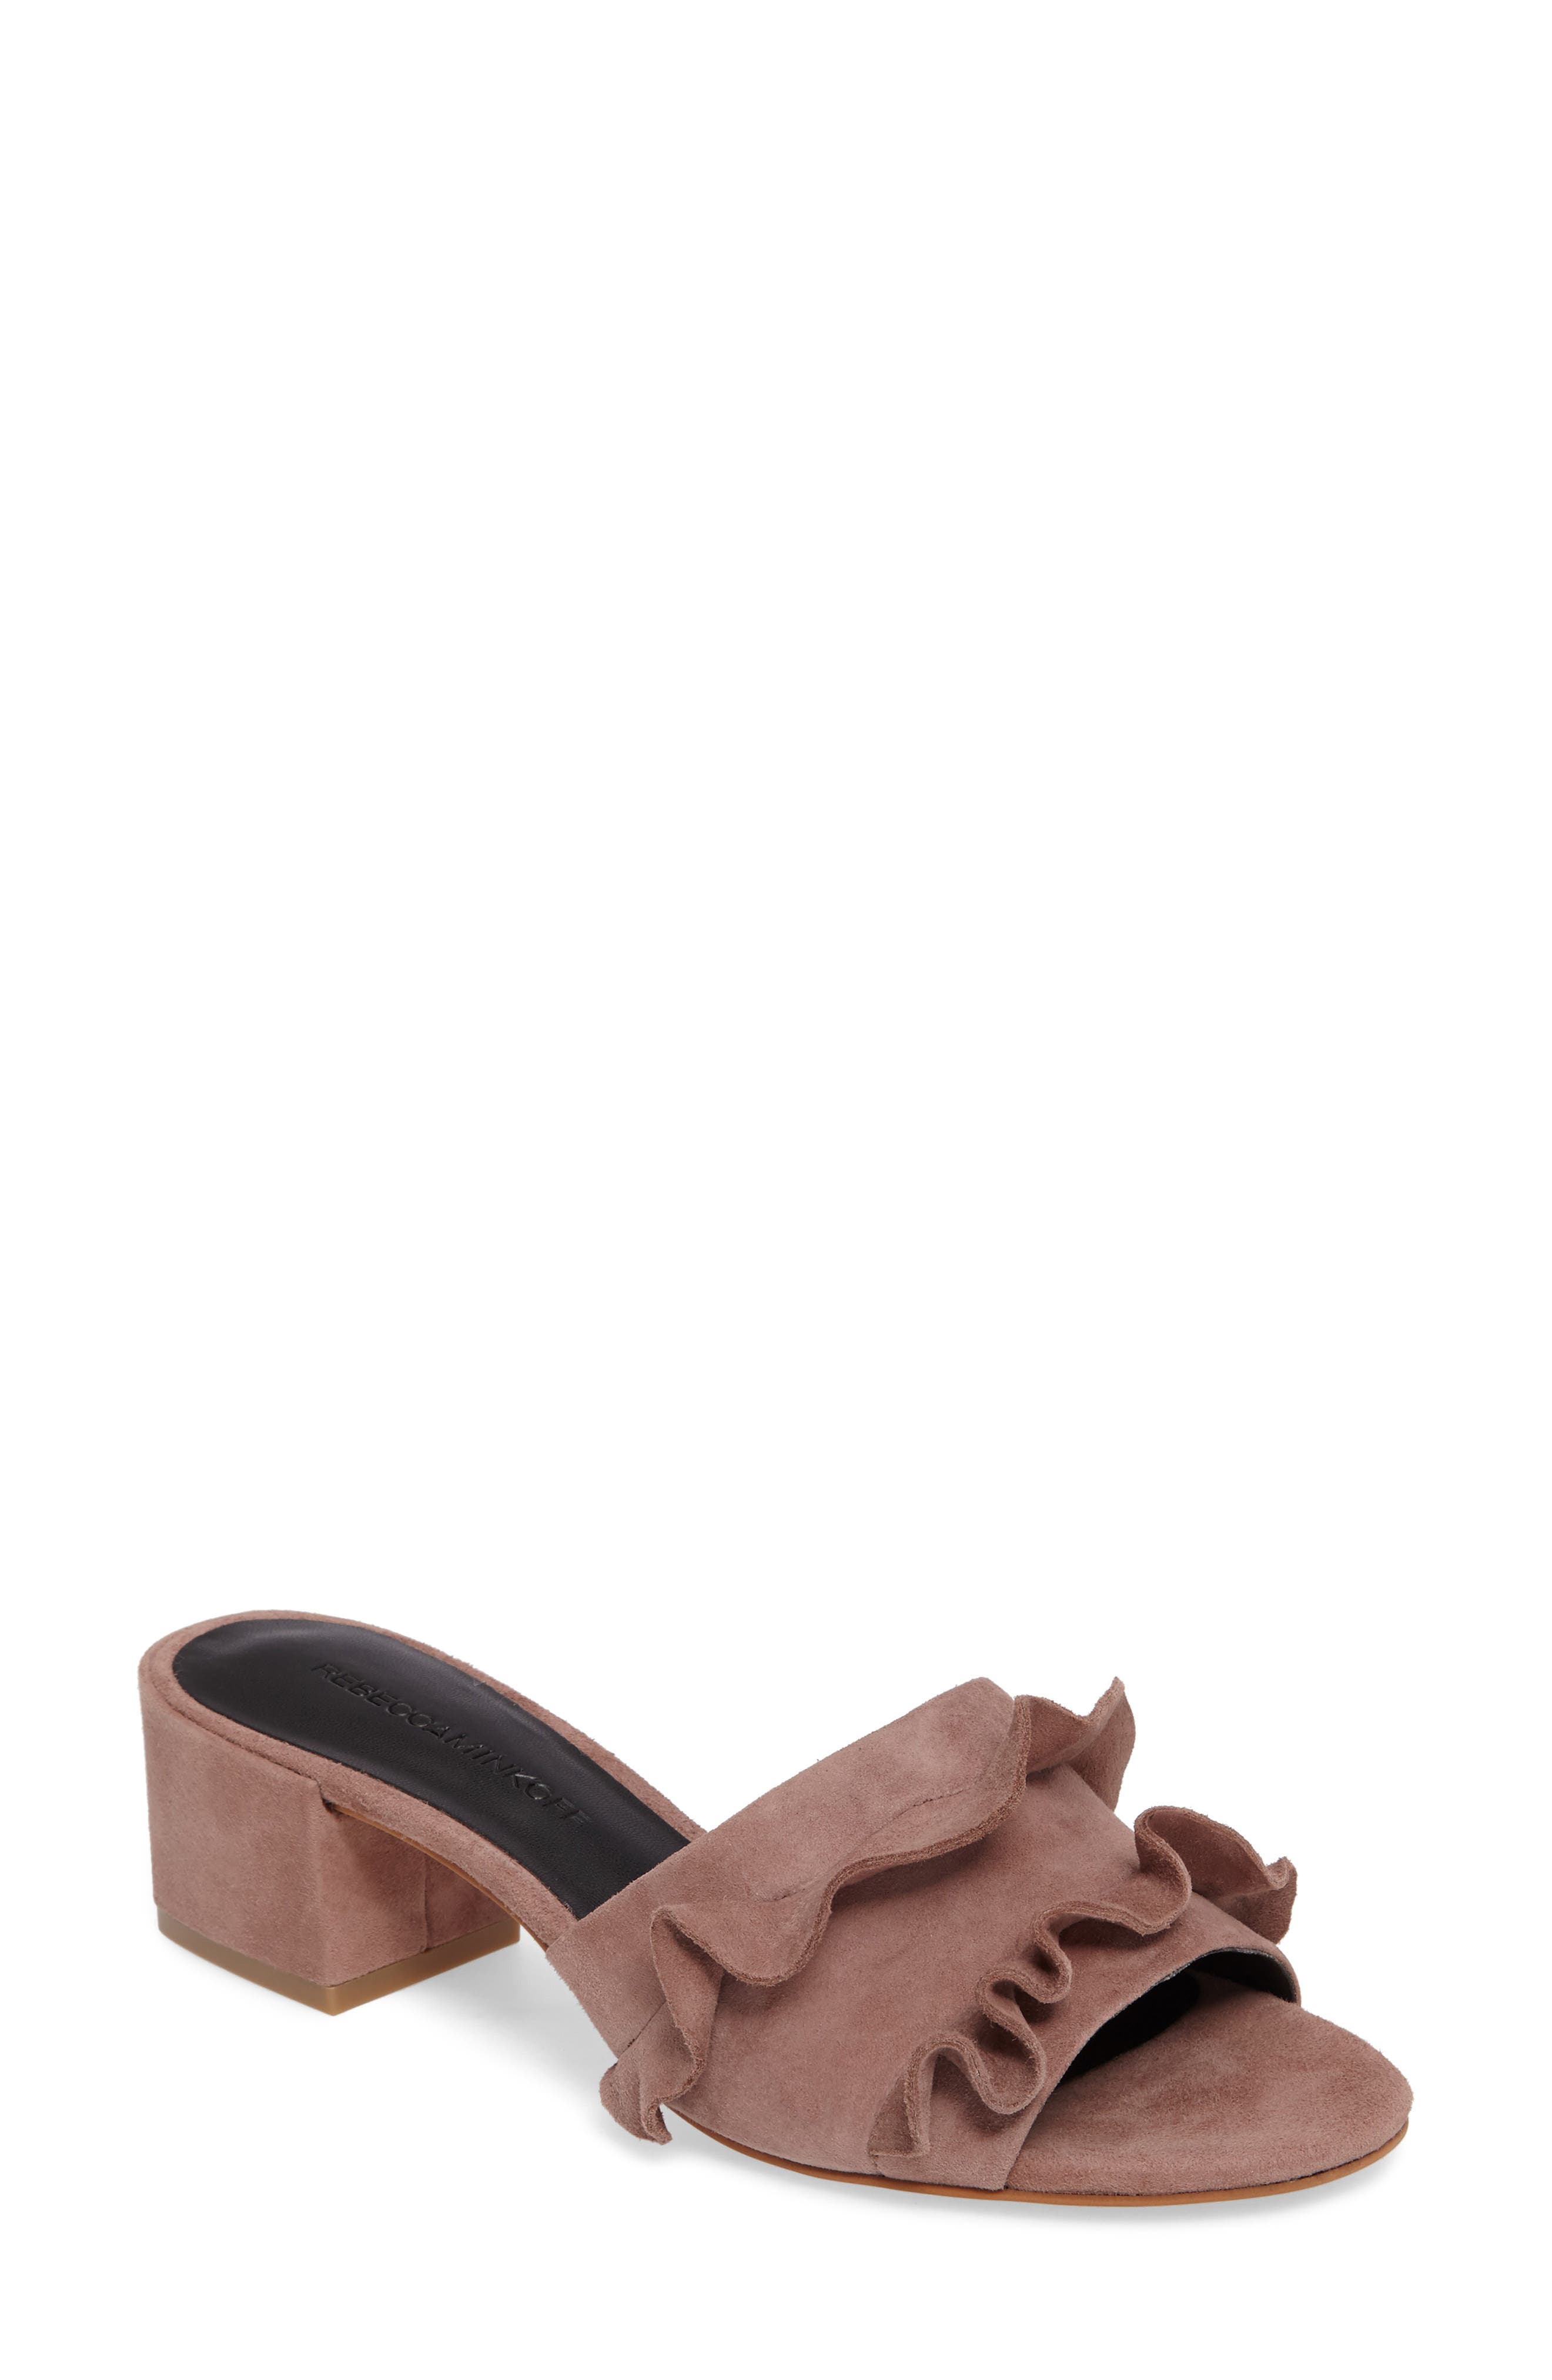 Isabelle Ruffle Mule Sandal,                         Main,                         color, Berry Smoothie Suede